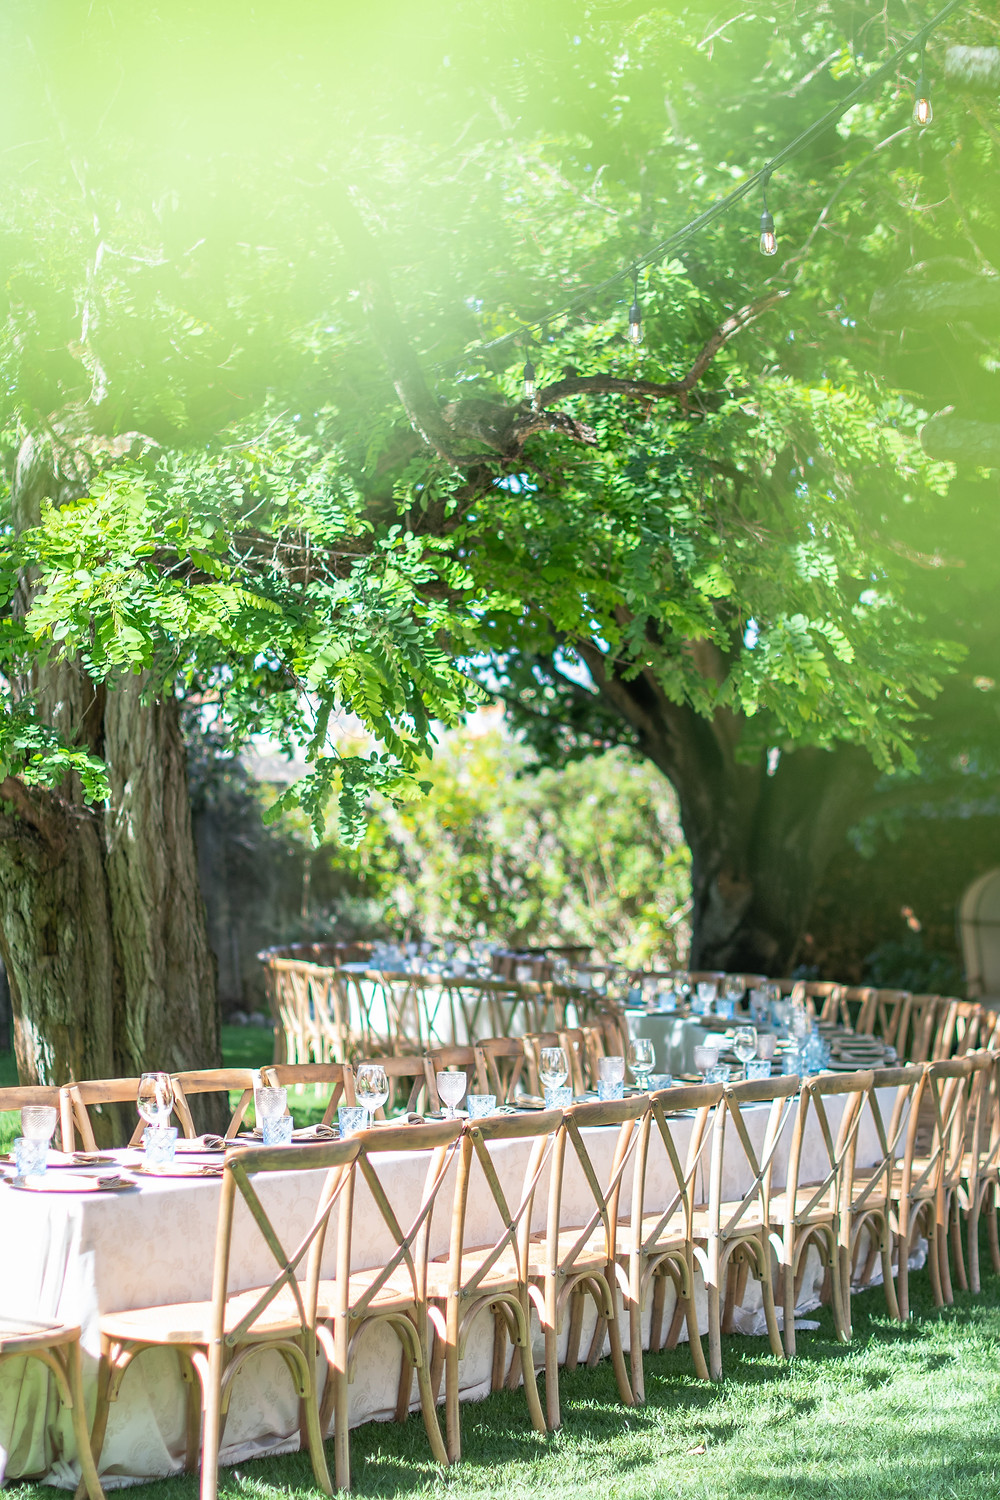 A long and curved table for an outdoor wedding decoration idea